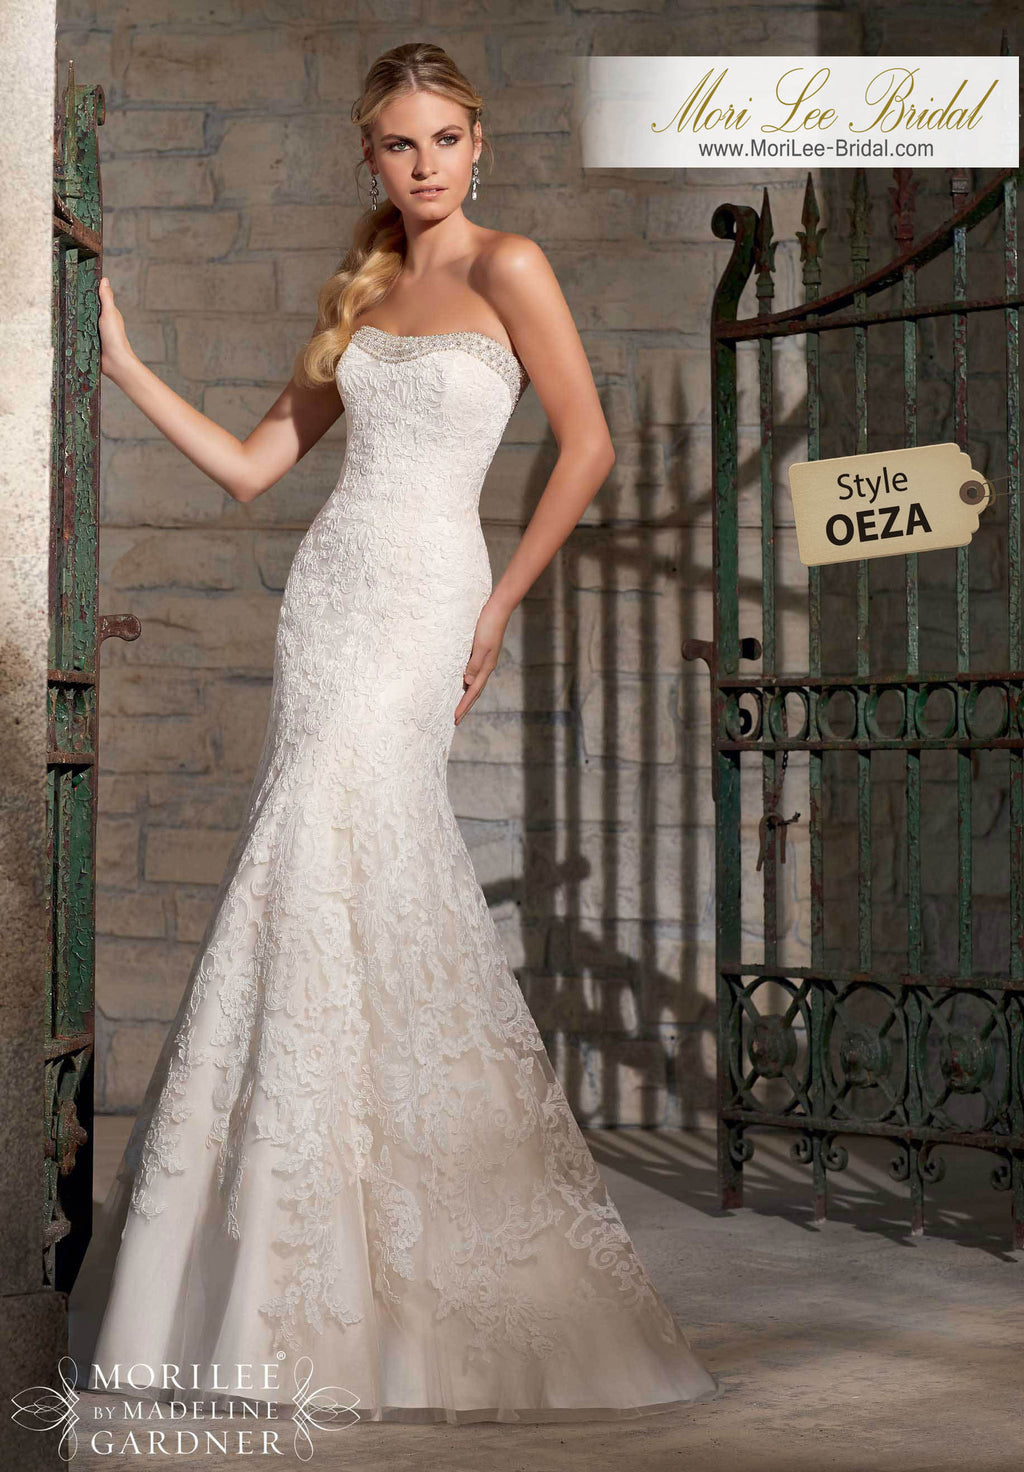 OEZA* - Mori Lee Bridal